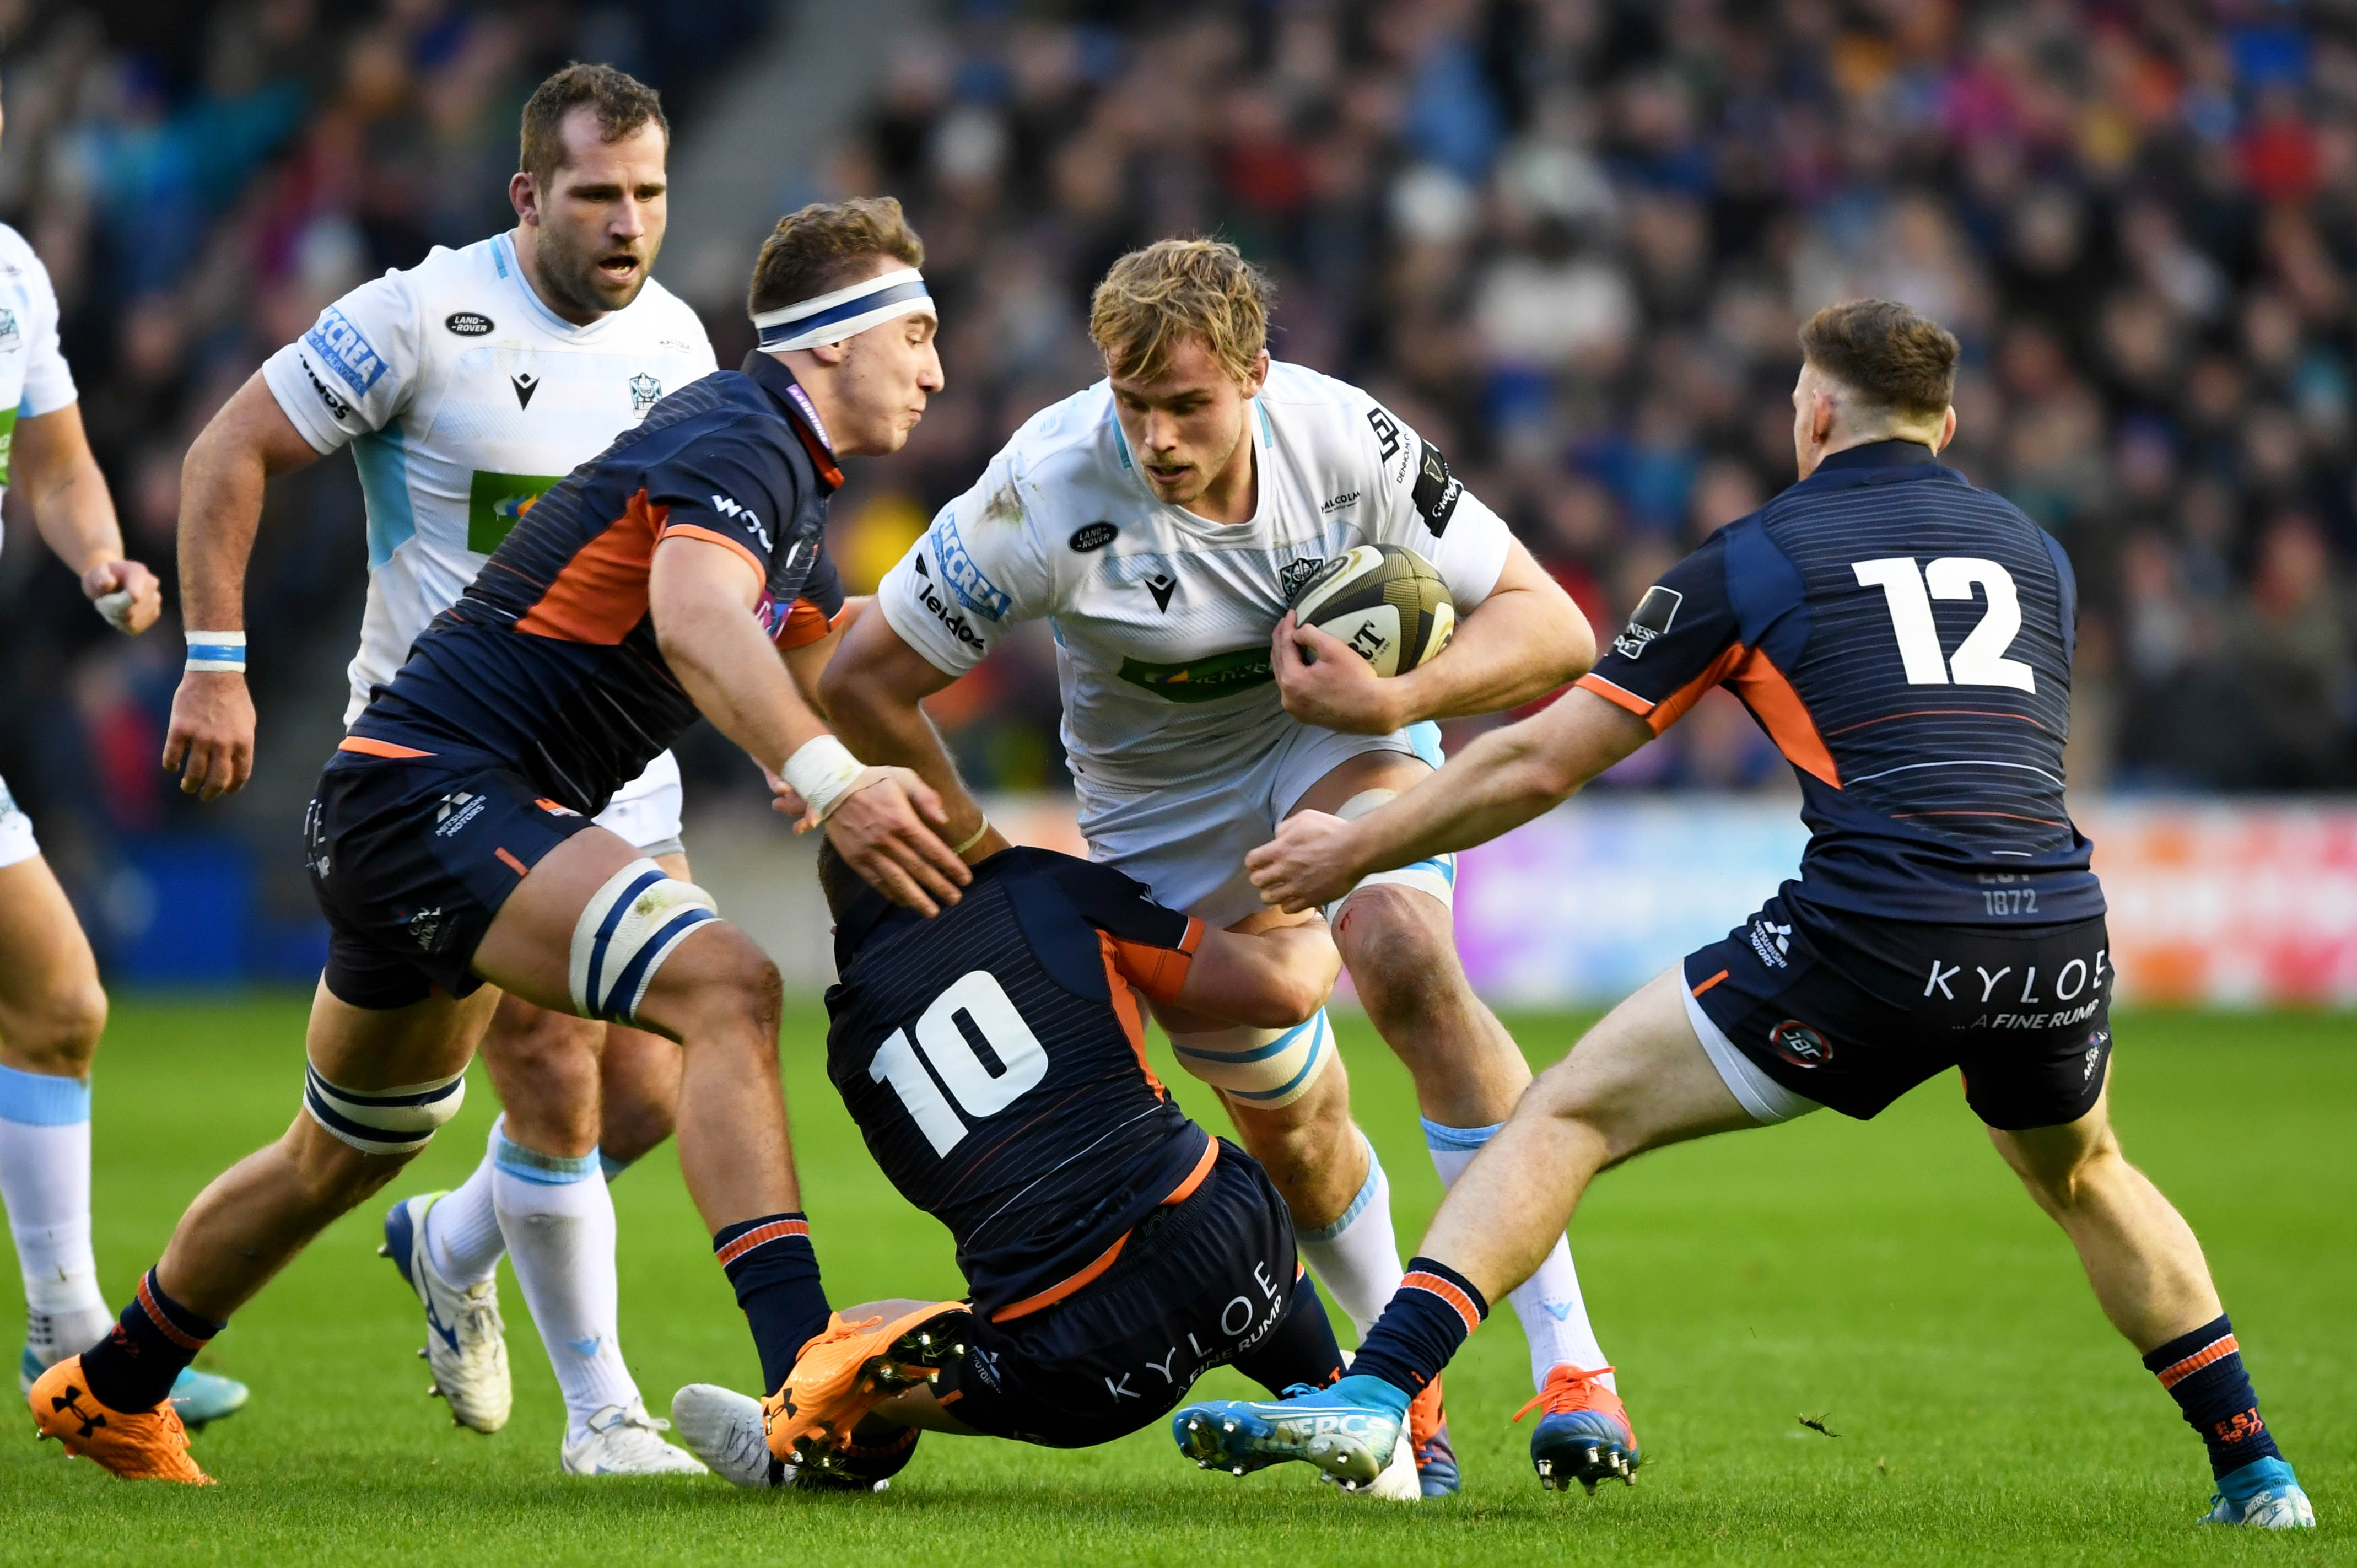 Jonny Gray carries the ball for Glasgow at Murrayfield.